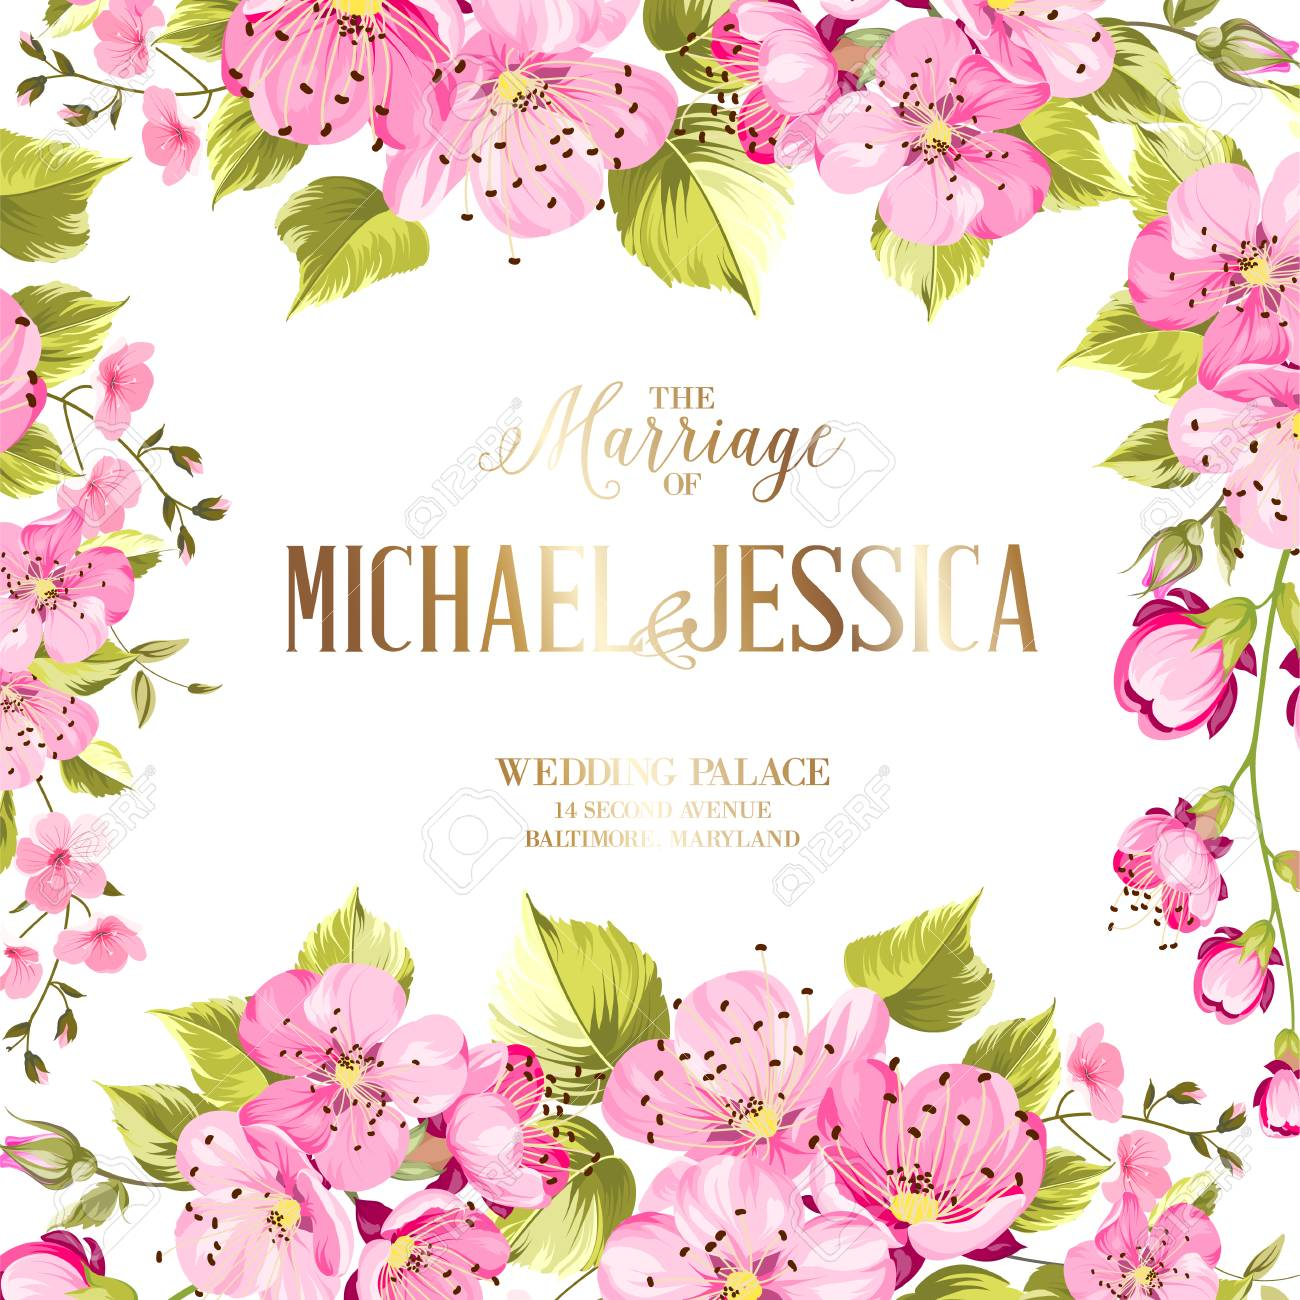 Wedding Invitation Card With Spring Flowers Vintage Wedding